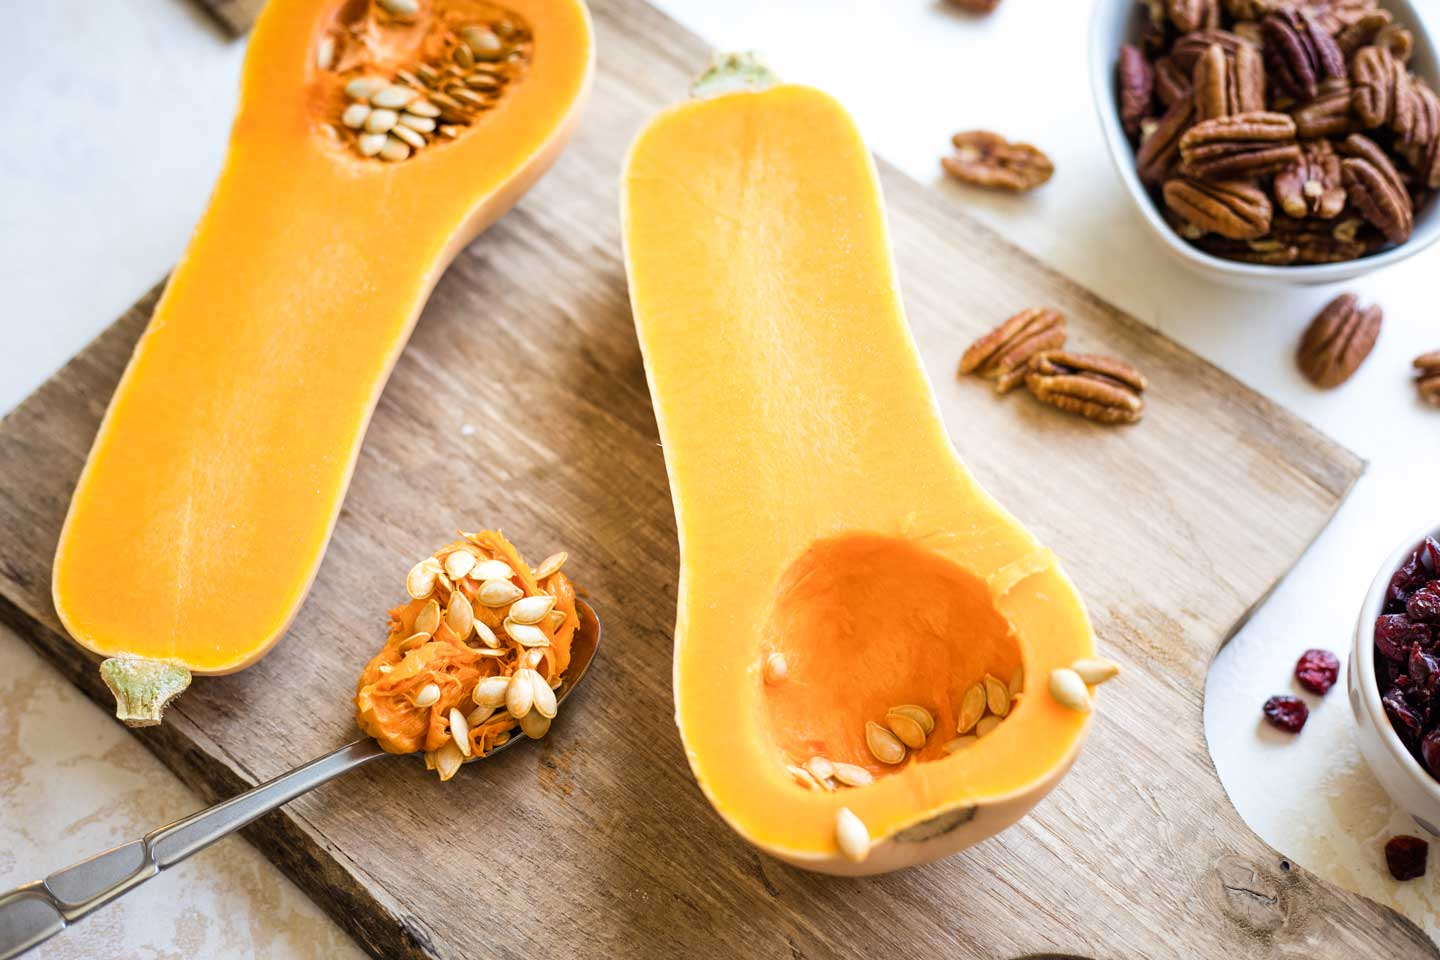 butternut squash on cutting board, with some of the seeds scooped out with a spoon